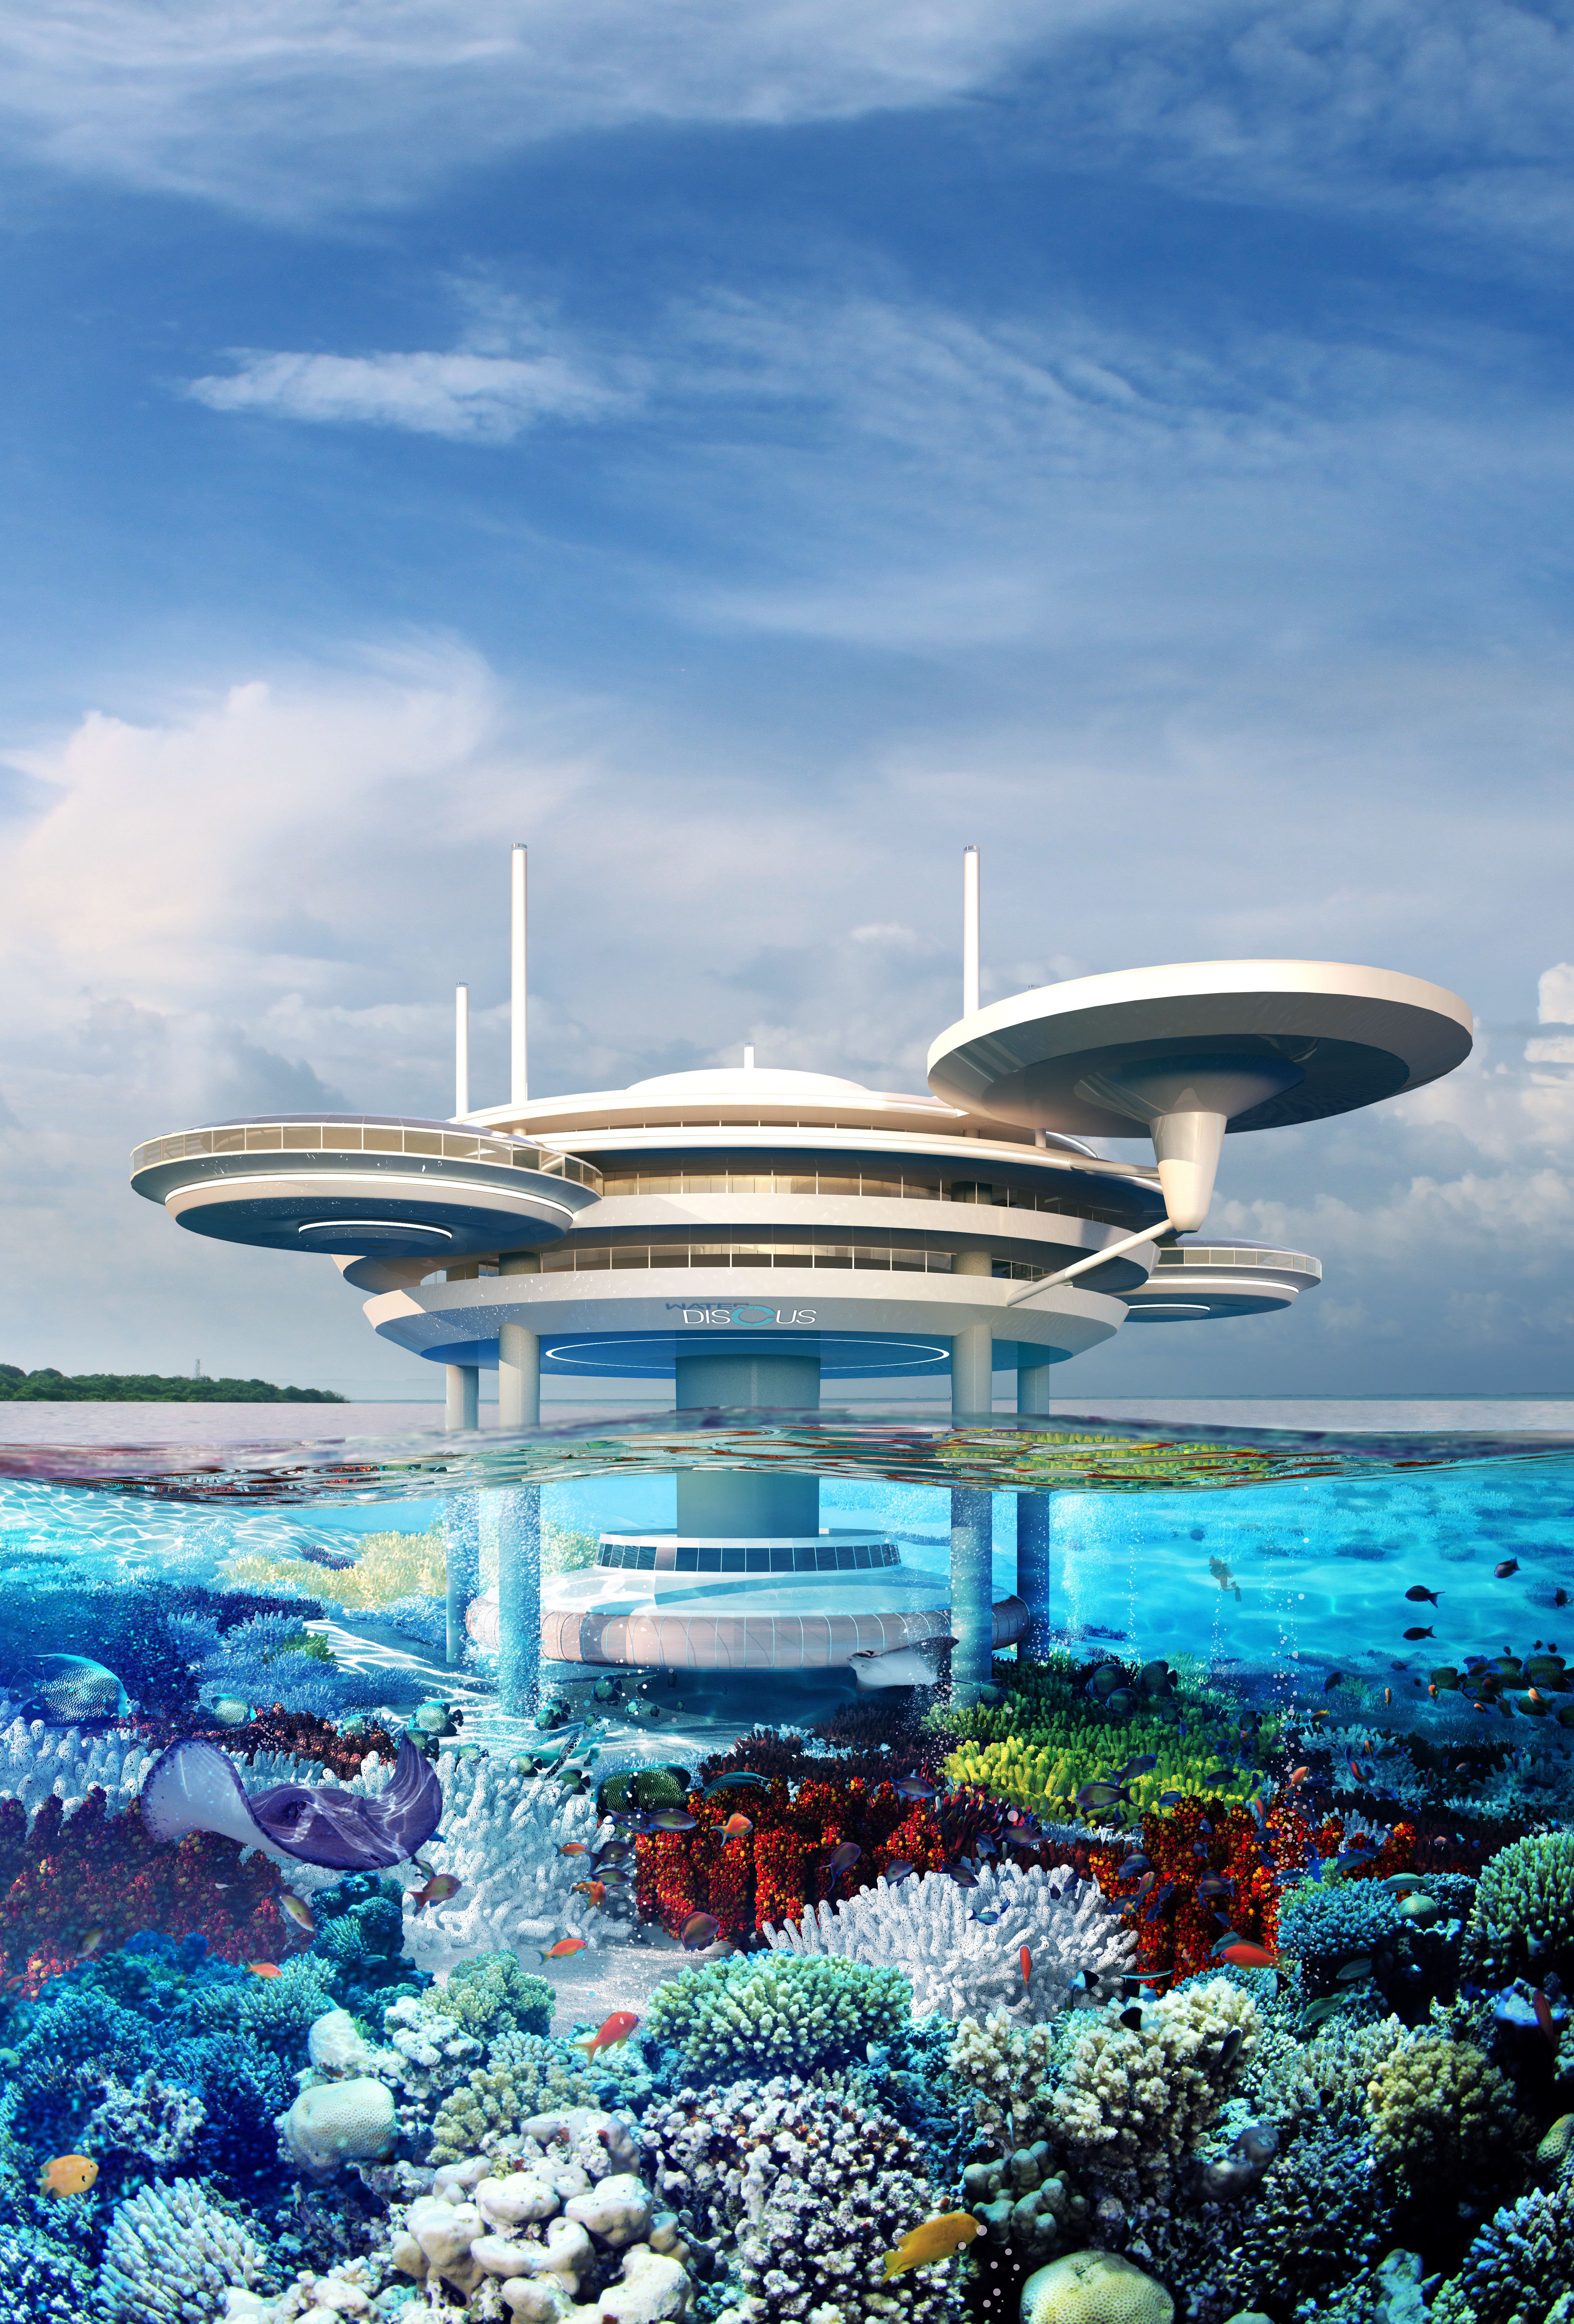 Water Discus Hotel To Be Built In The Maldives